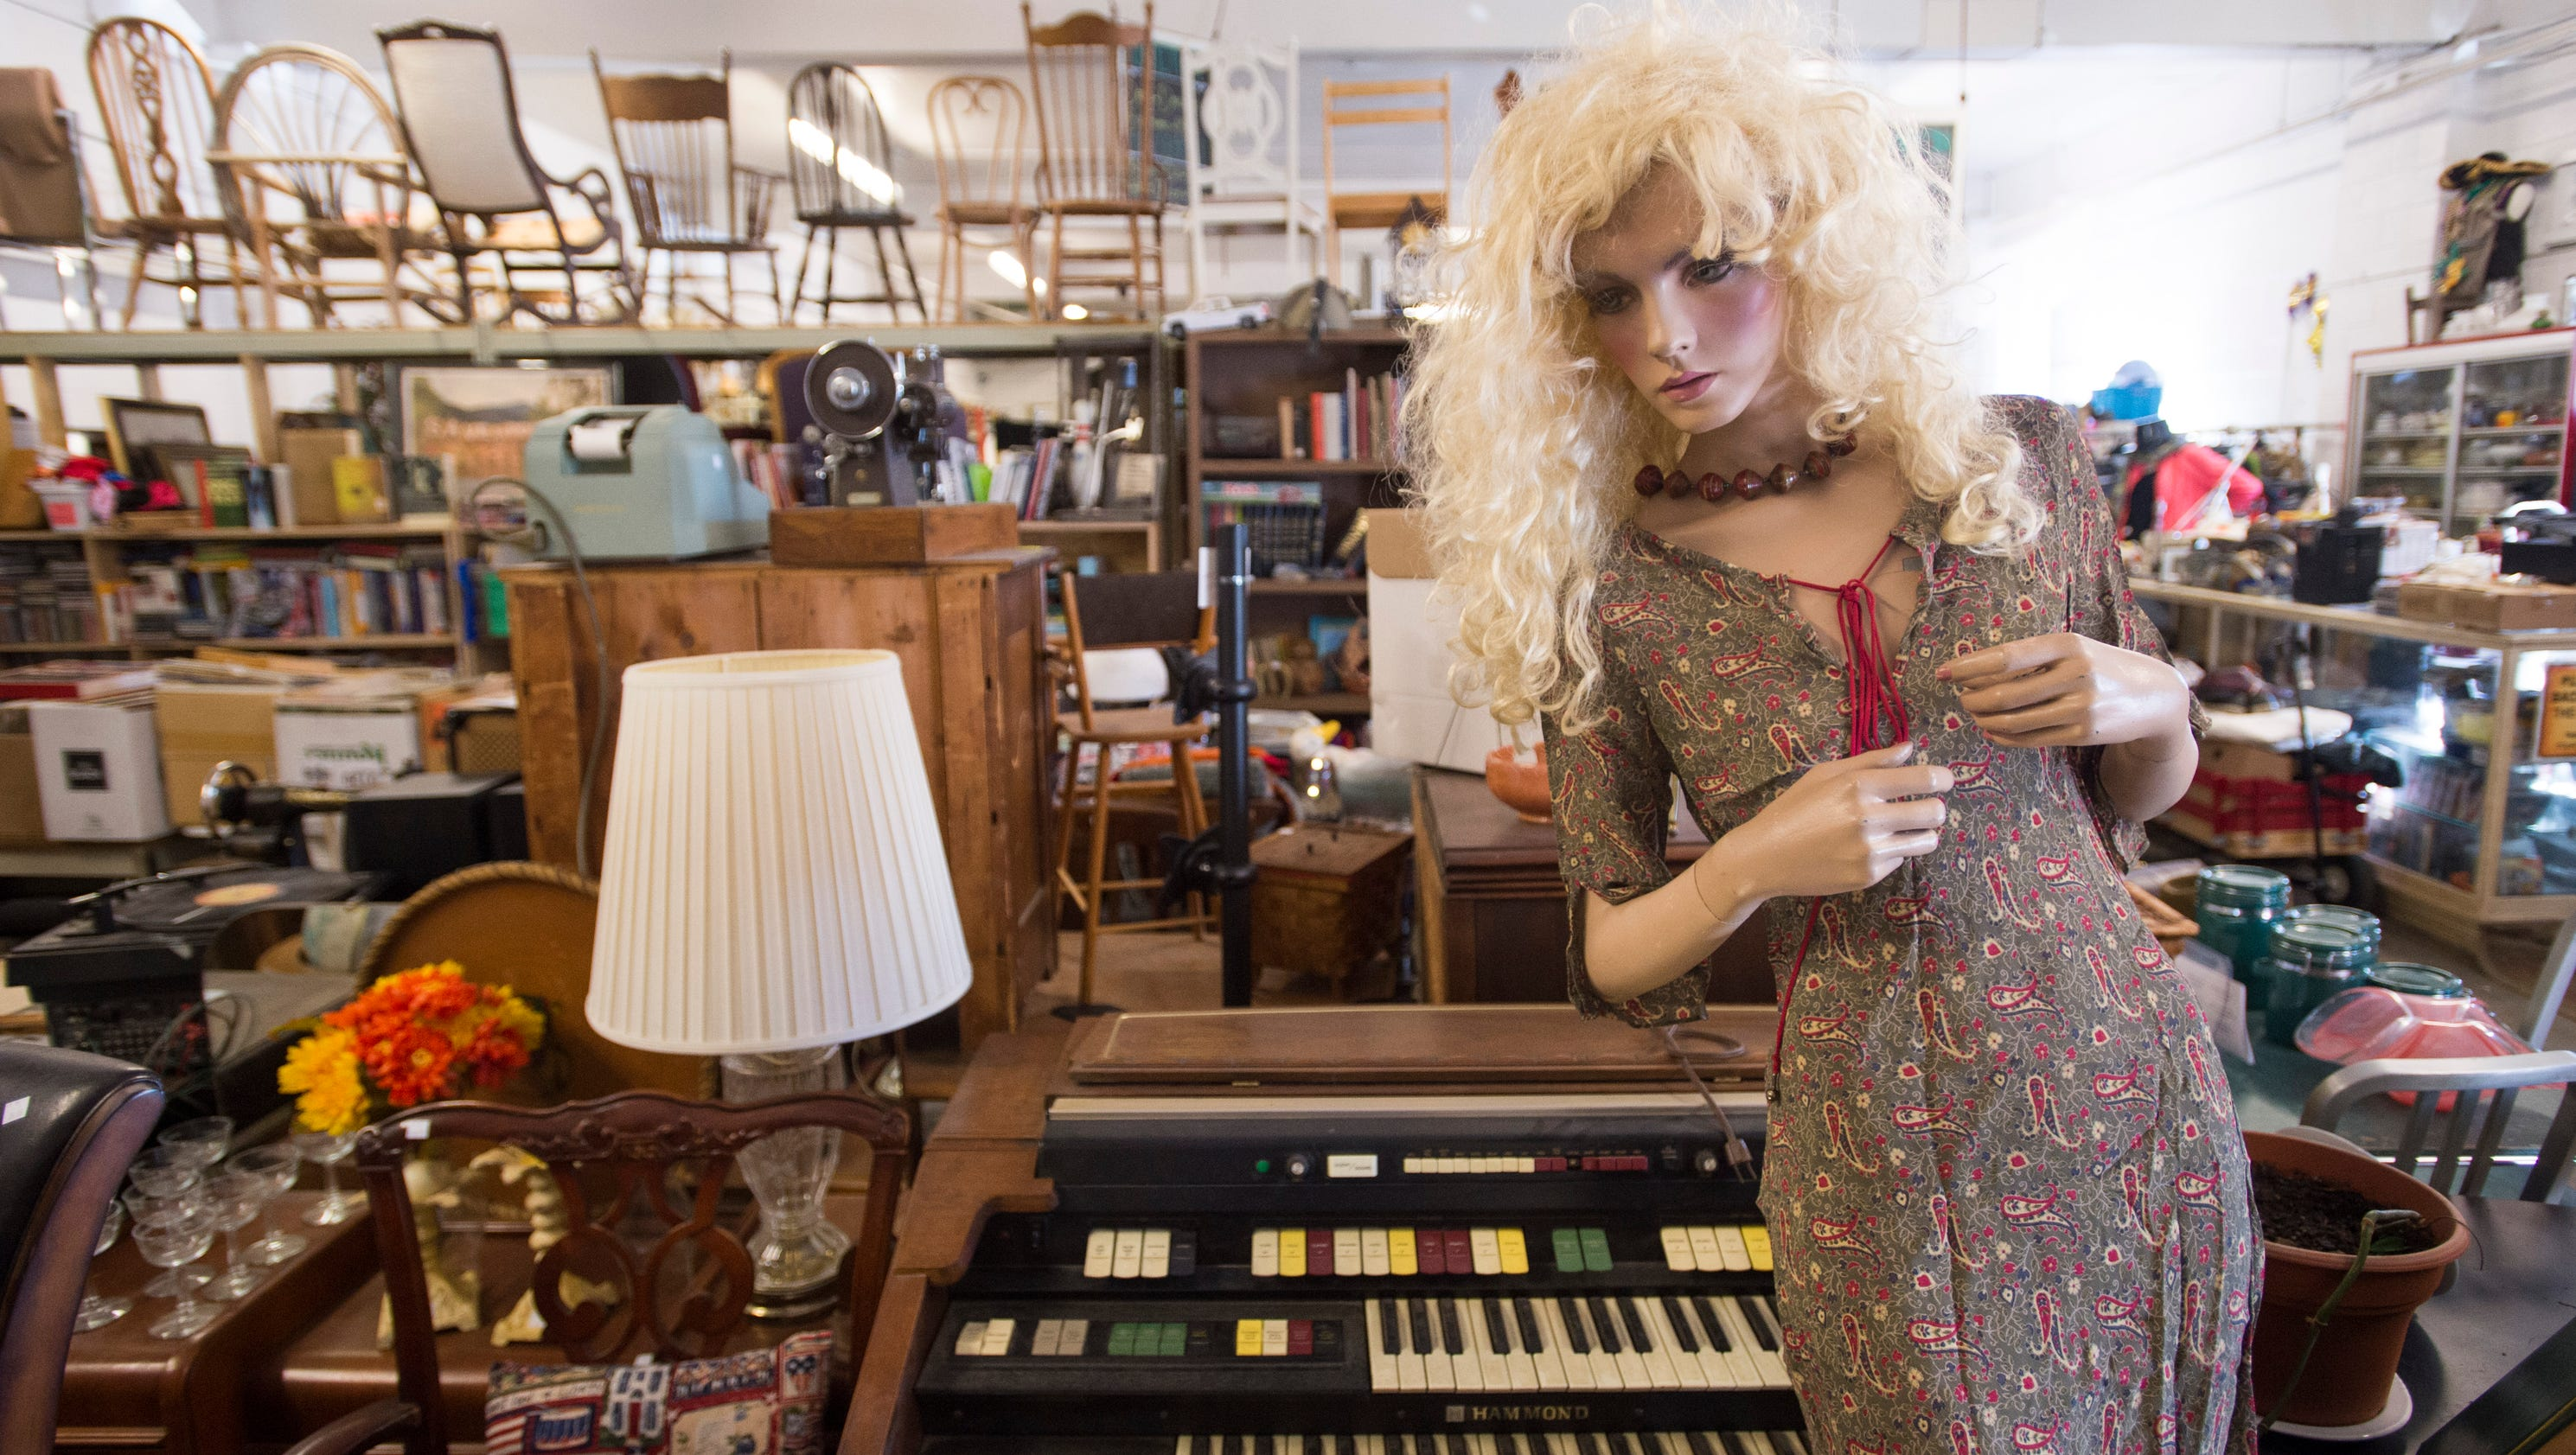 rags or riches why thrift stores sell some donations and toss others